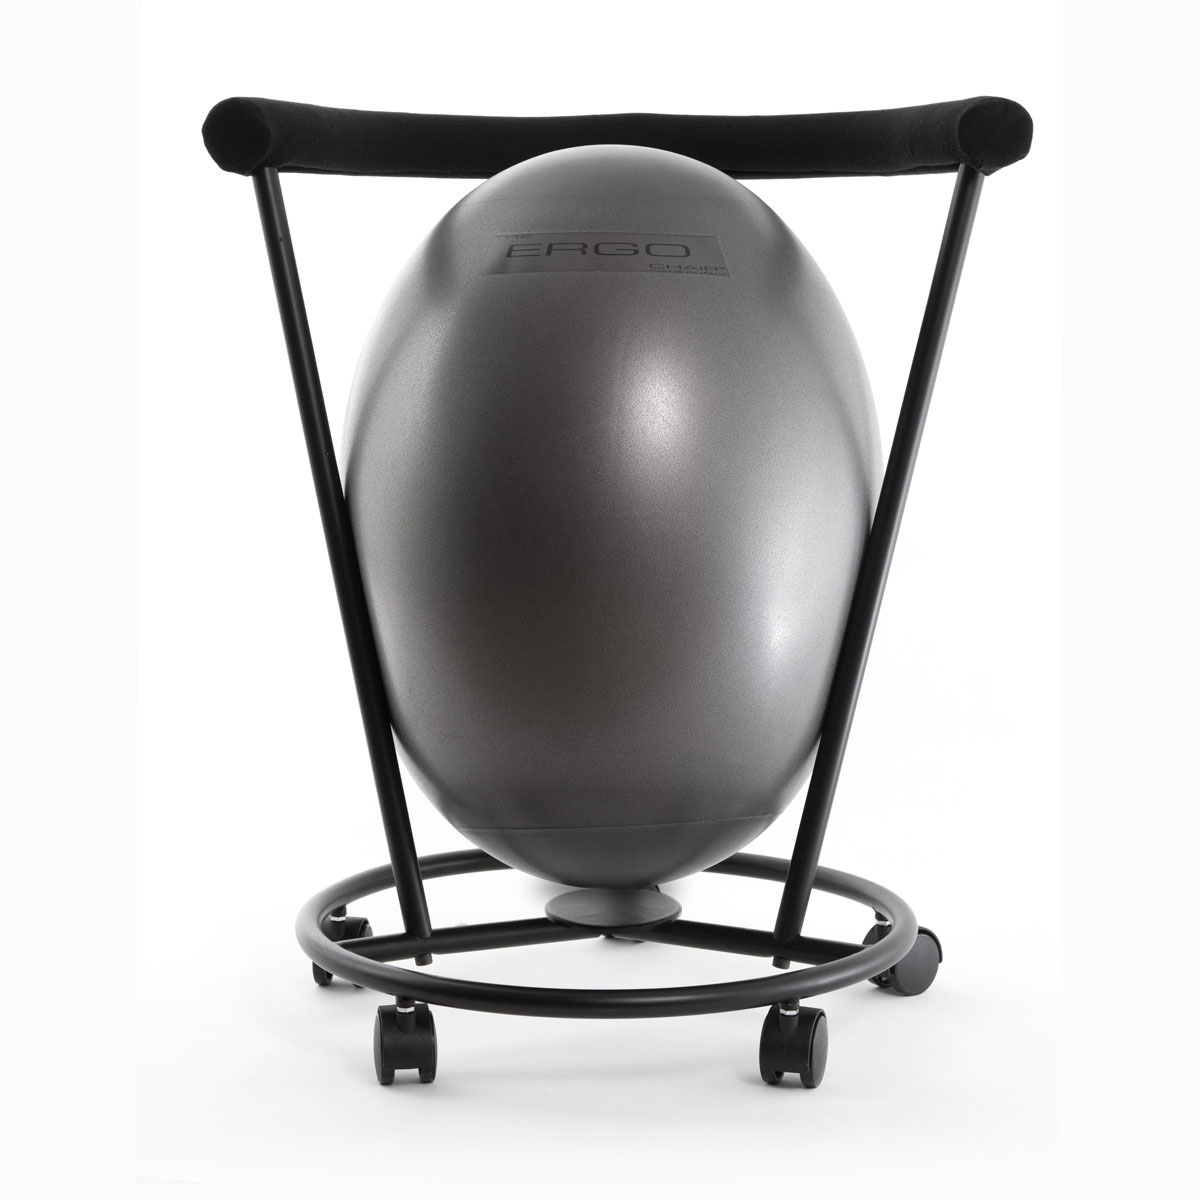 yoga ball chair exercises retro dining chairs nz exercise secrets the ergo